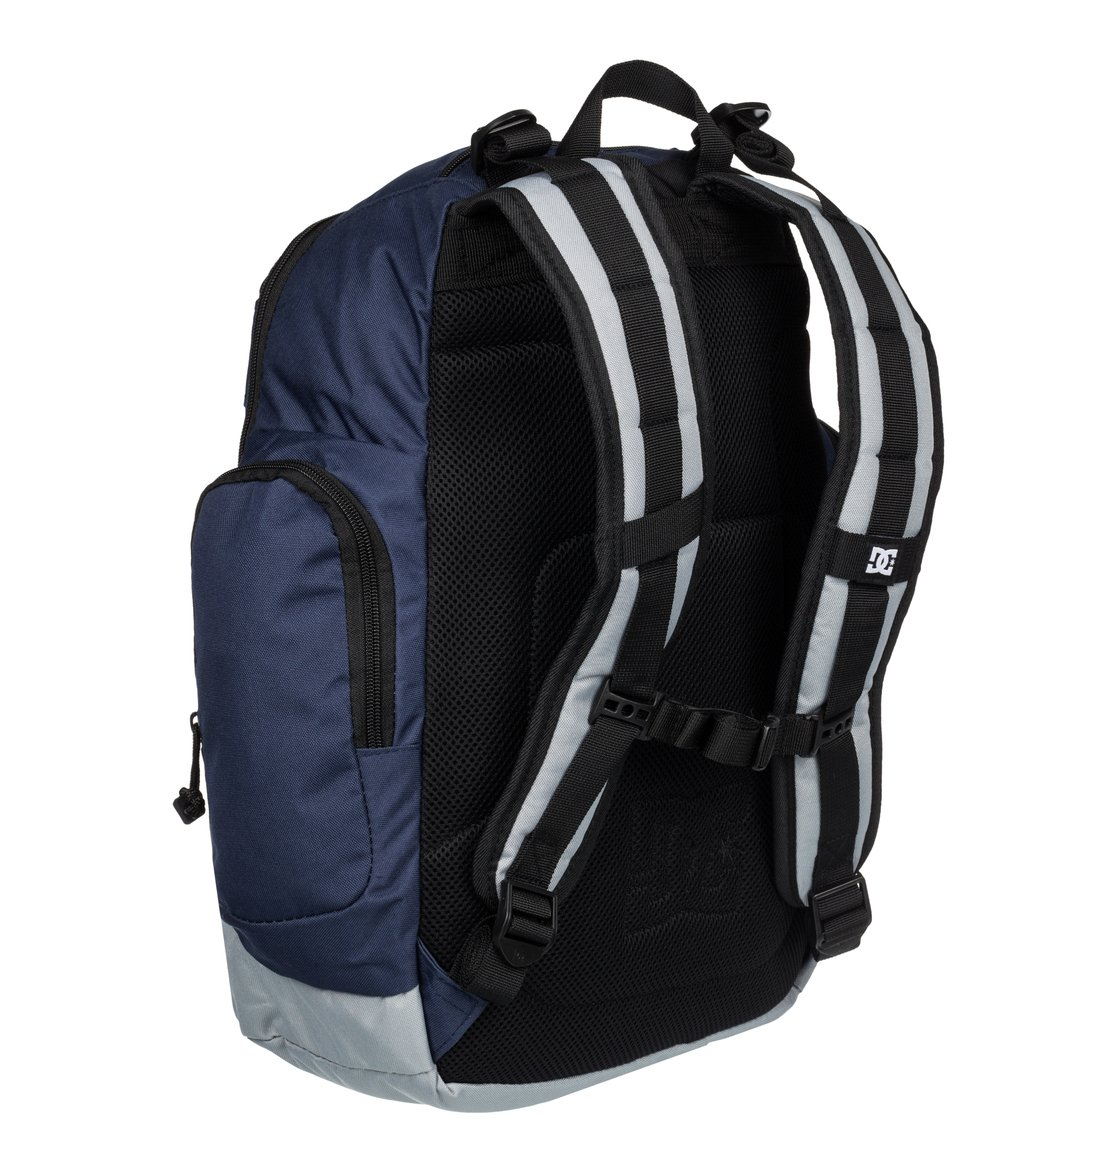 c1b565f50d 2 Wolfbred Backpack 3153040104 DC Shoes